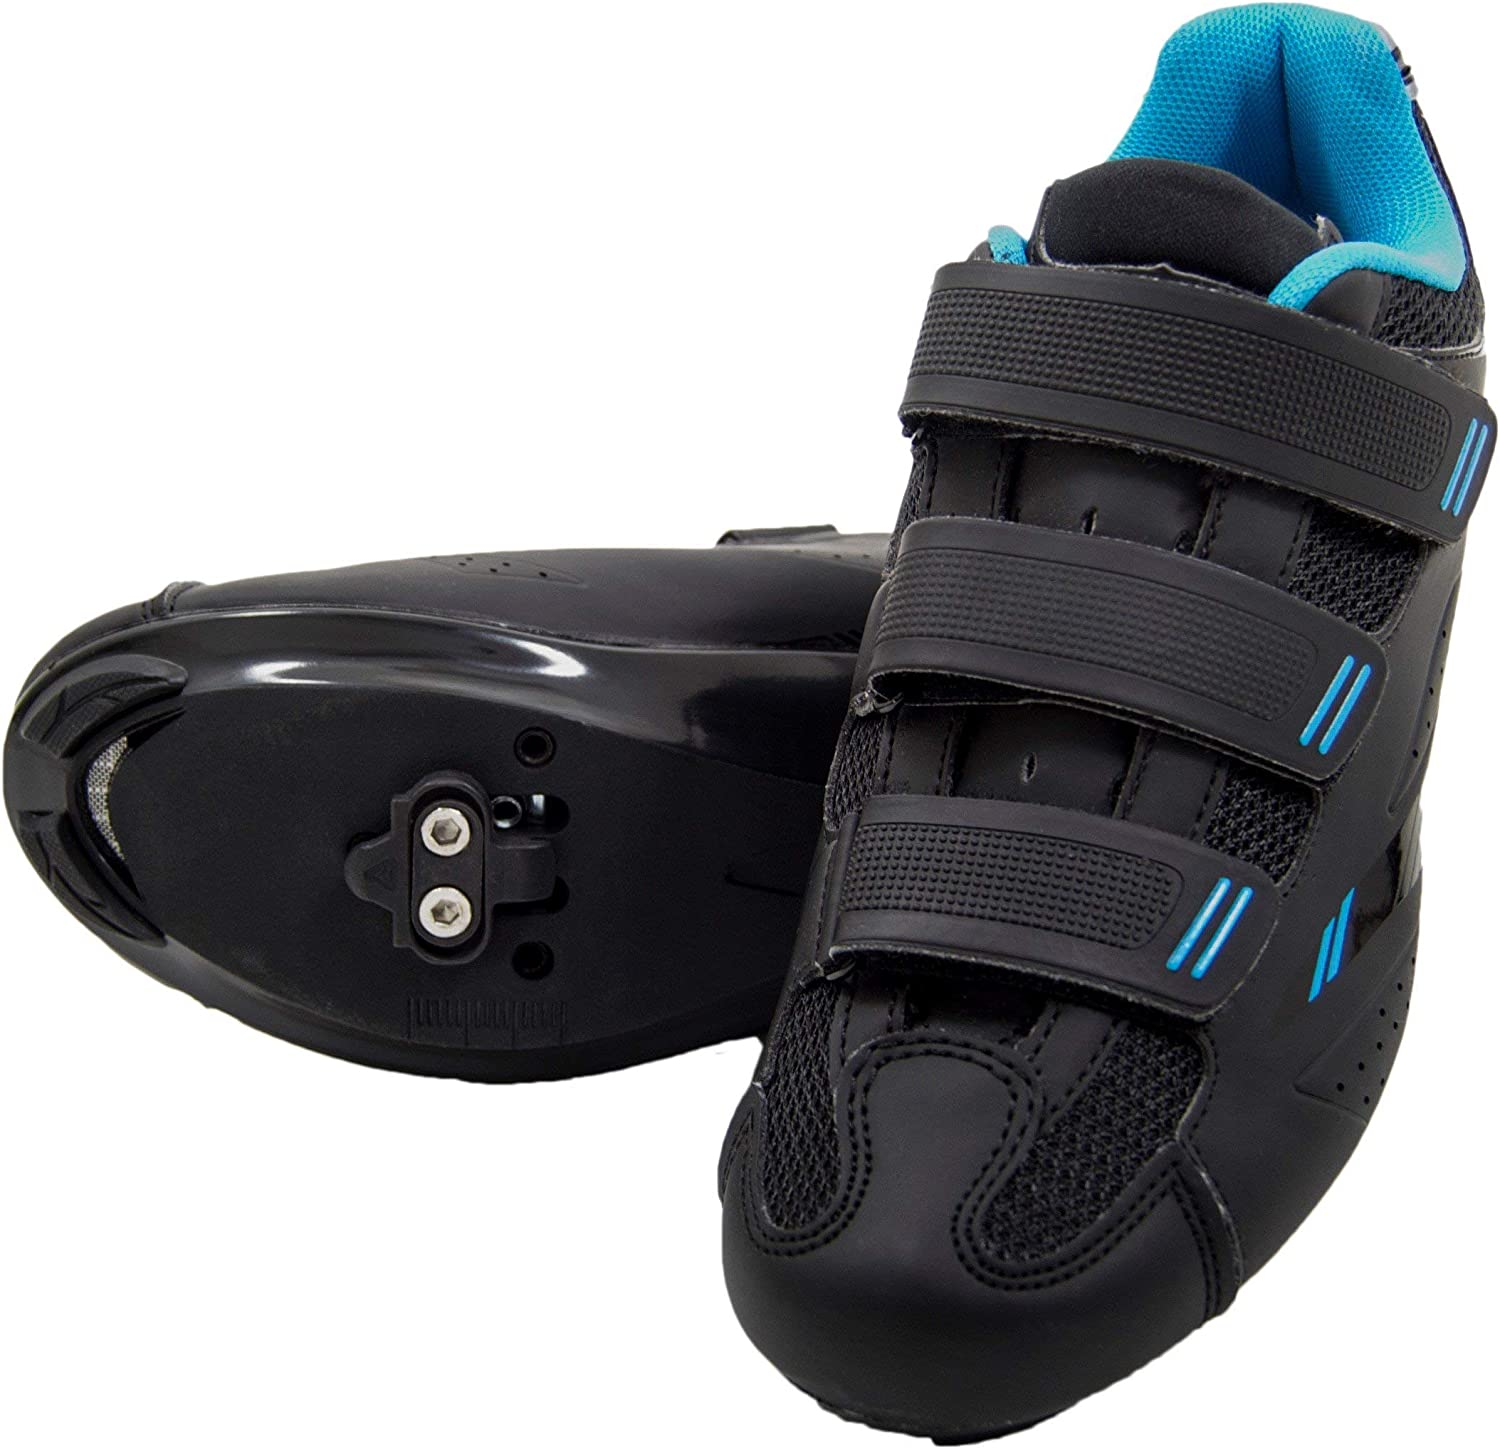 SPD Look Delta Pink Blue Tommaso Pista Womens Spin Class Ready Cycling Shoe Bundle with Compatible Cleat White Black